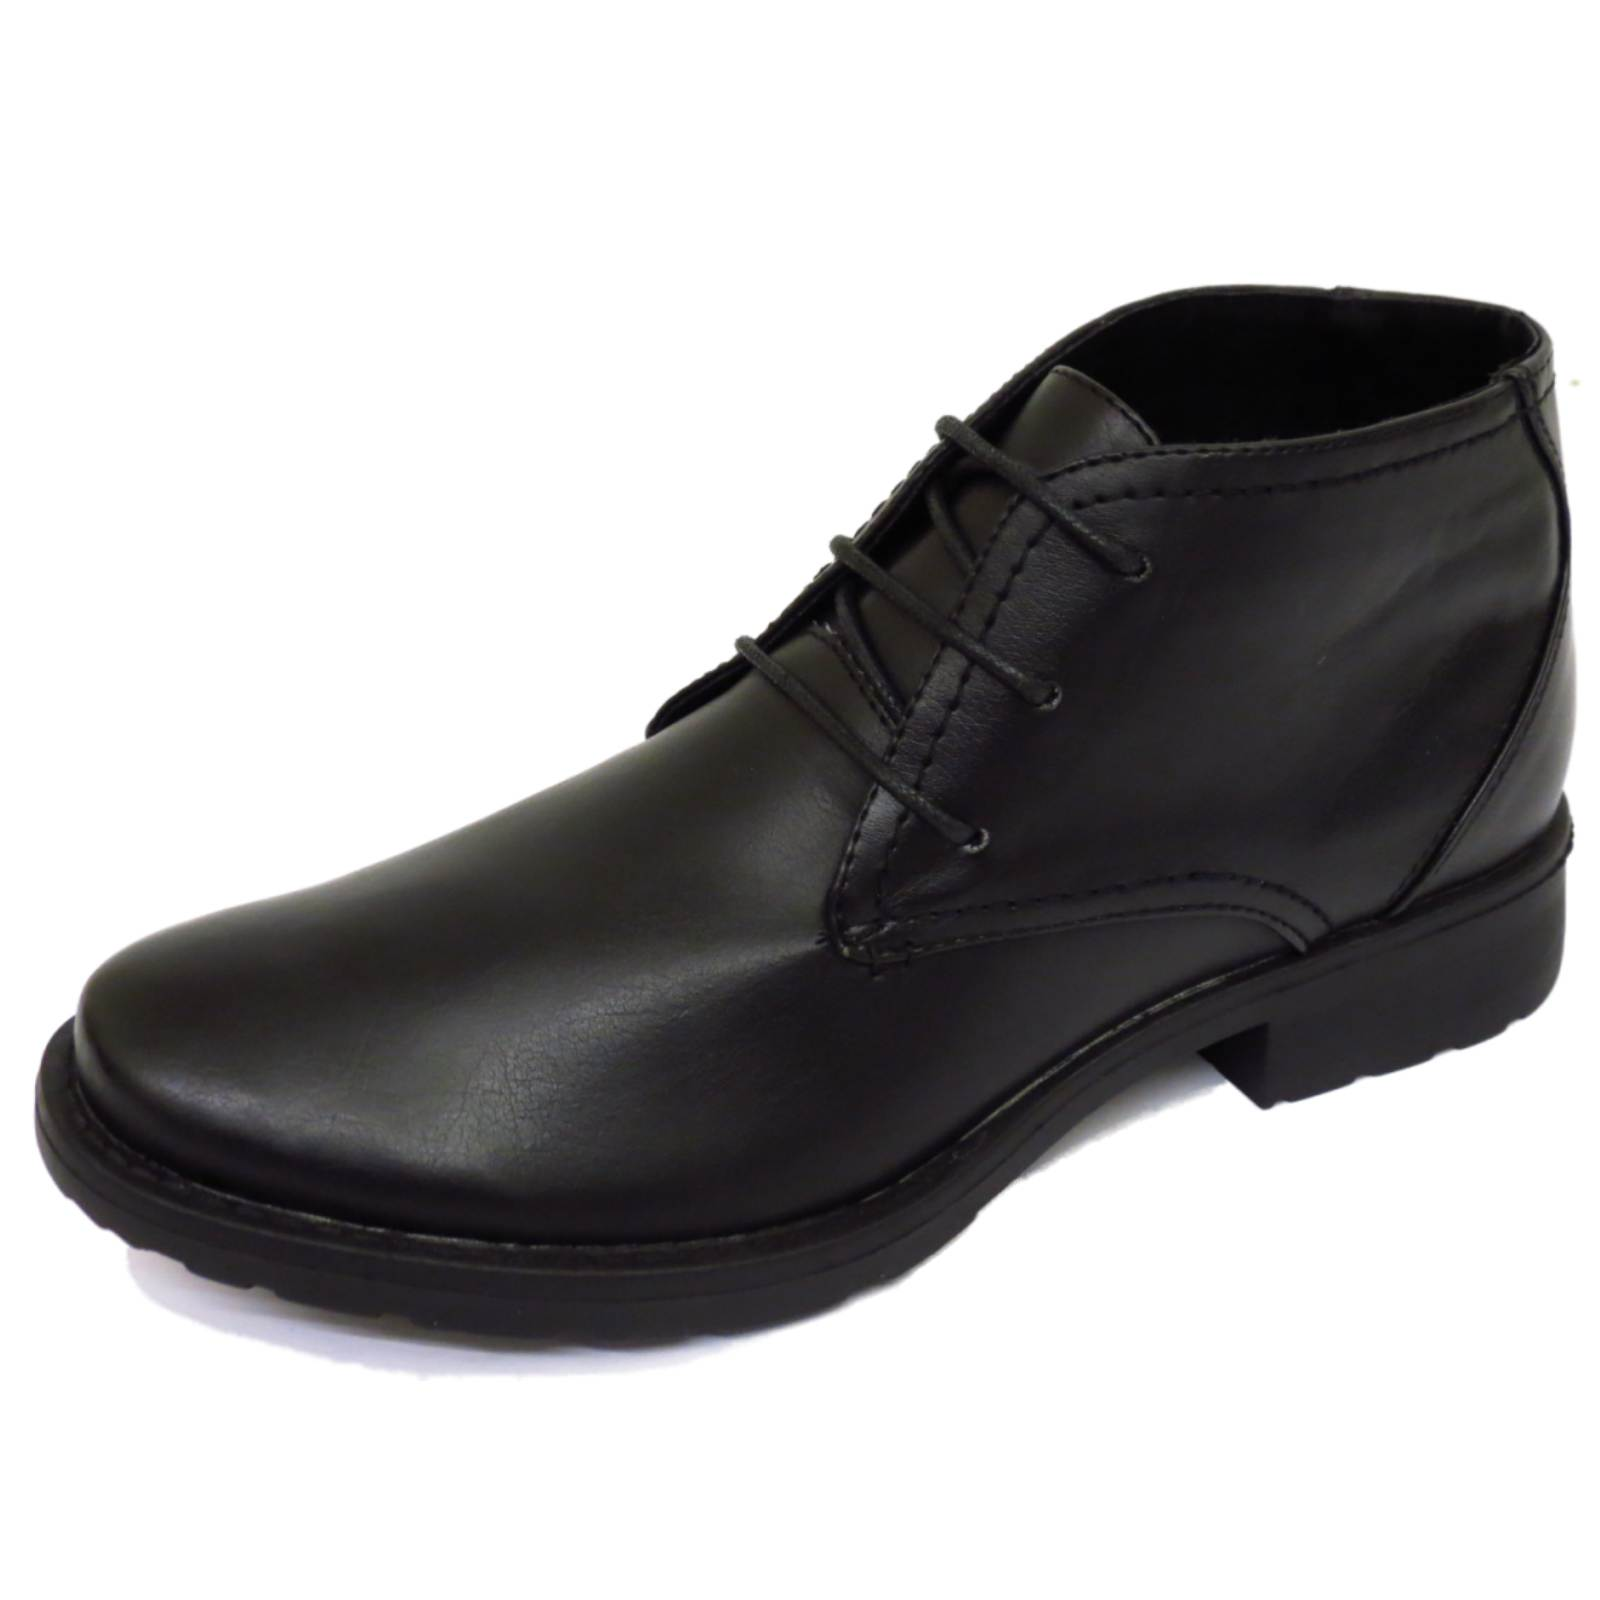 Mens Black Lace Up Smart Work Military Army Ankle Casual Boots Shoes